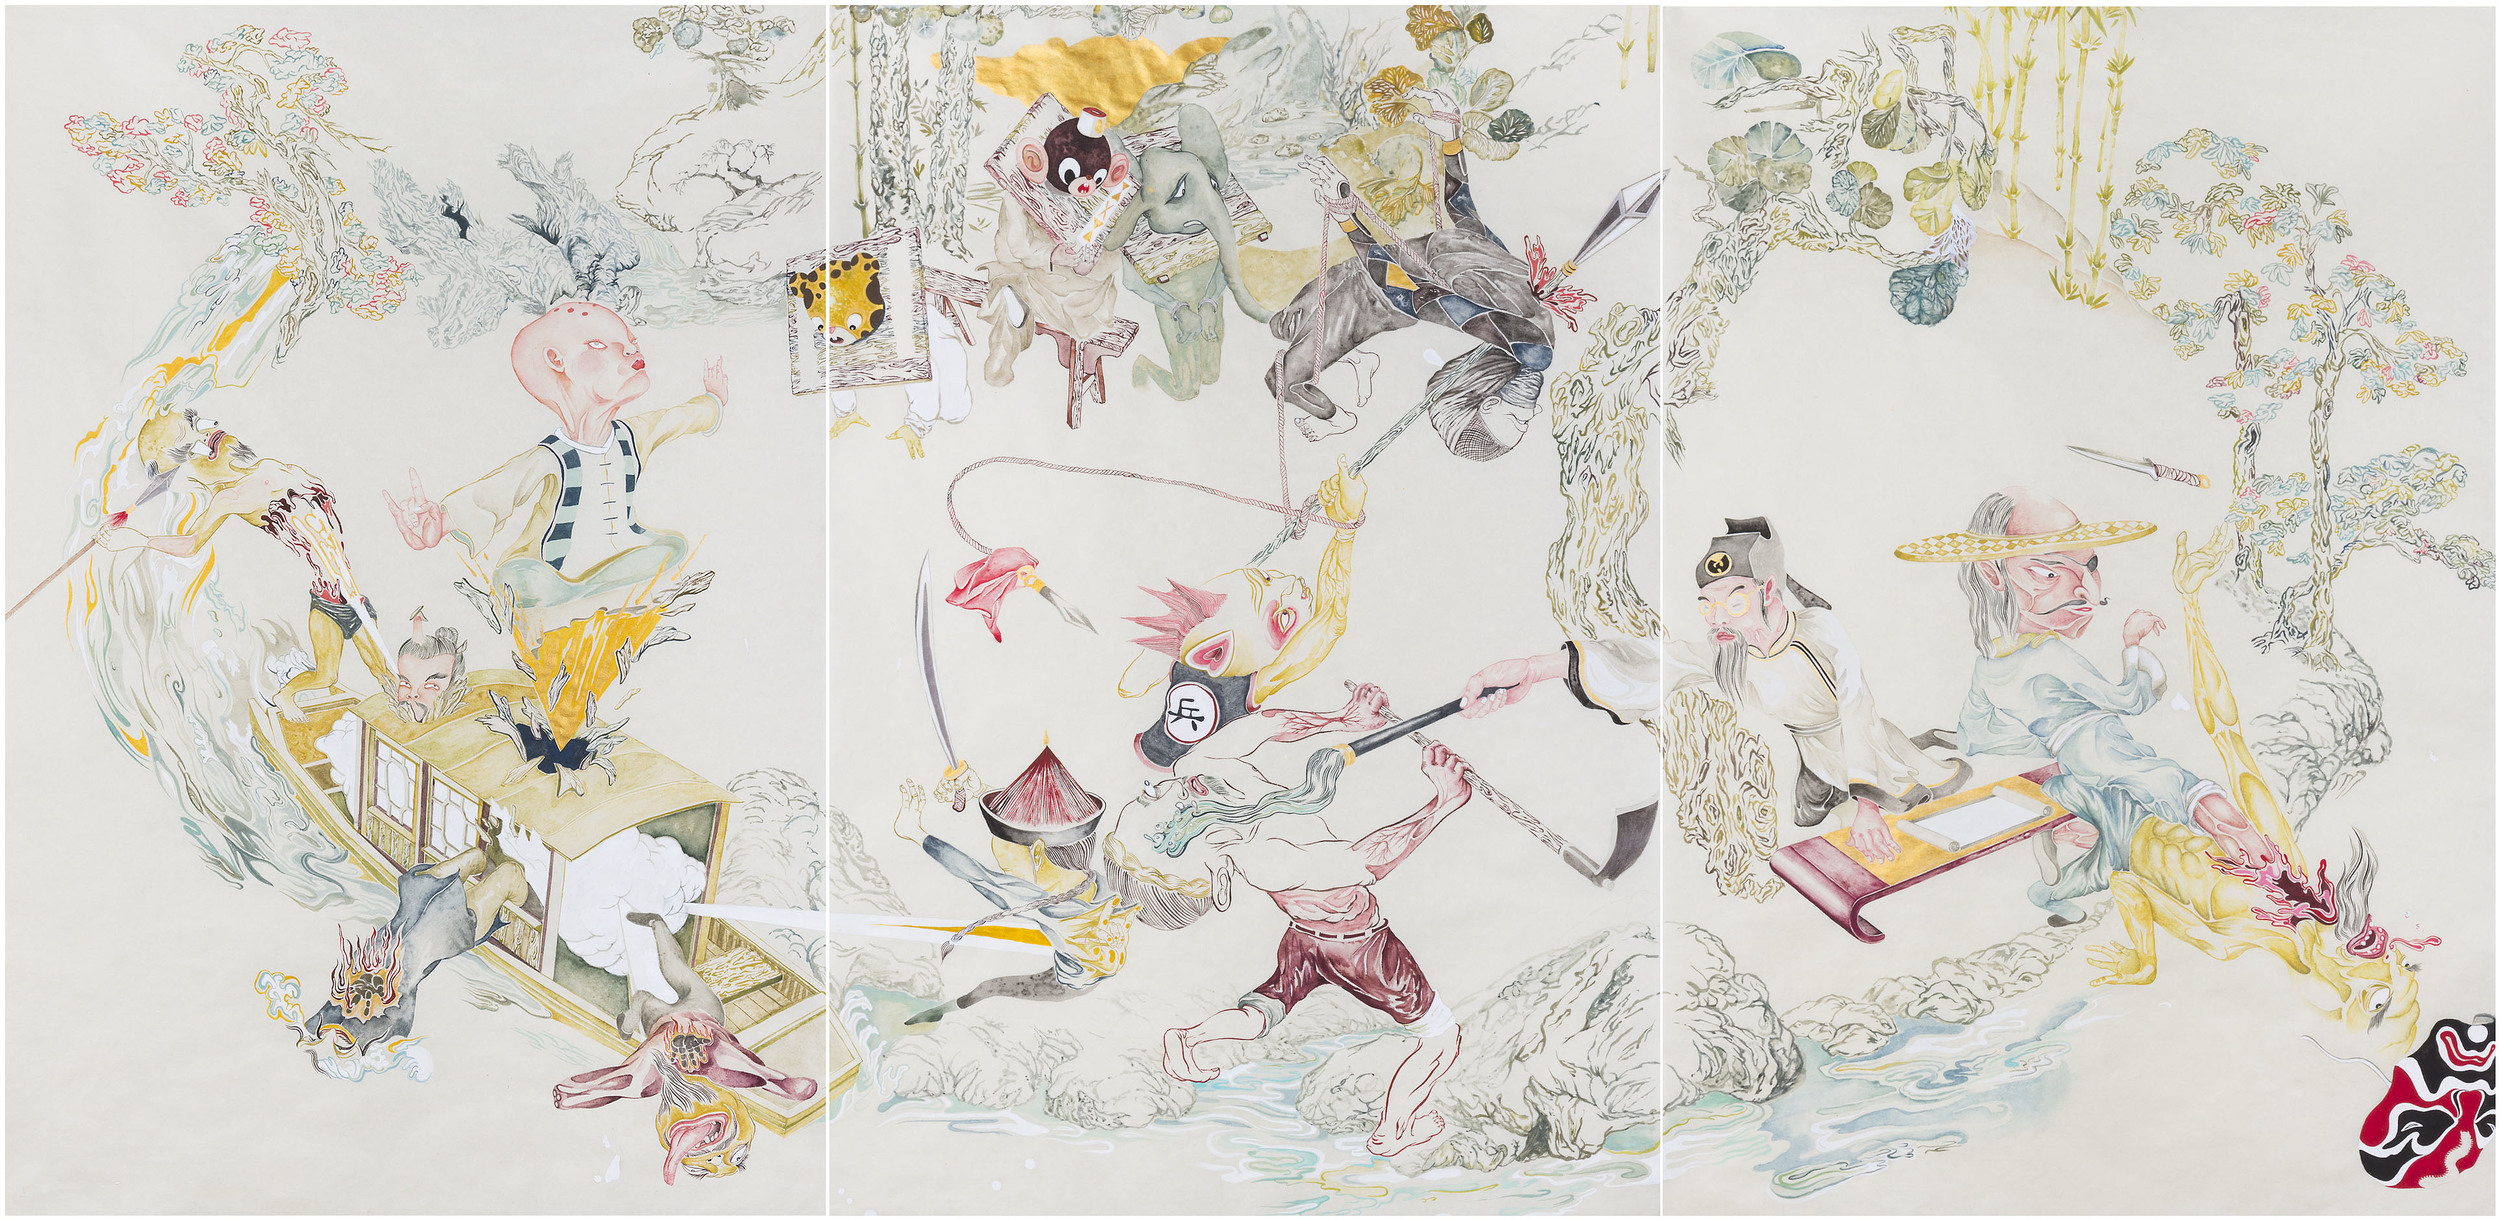 Howie Tsui 徐浩恩, Retainers of Anarchy (Taohua Island) 门客混战之桃花岛, 2010, Ink and paint pigment on mulberry paper 桑皮纸、国画颜料与墨, 110 x 206 cm